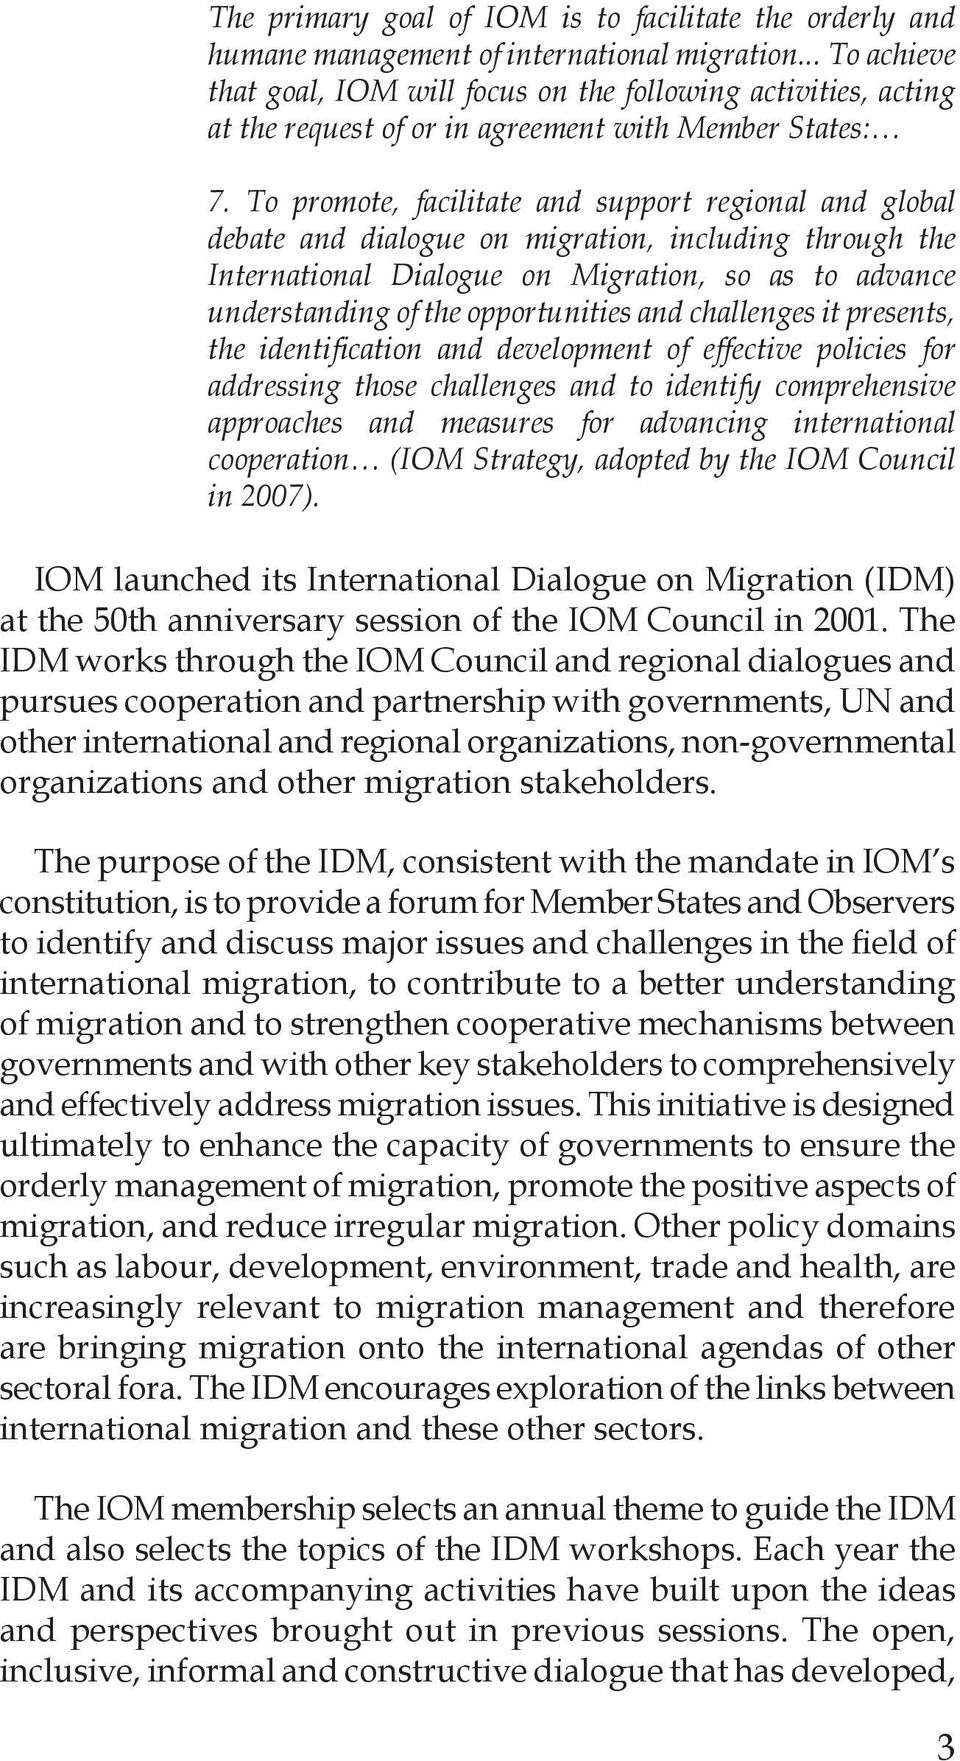 To promote, facilitate and support regional and global debate and dialogue on migration, including through the International Dialogue on Migration, so as to advance understanding of the opportunities